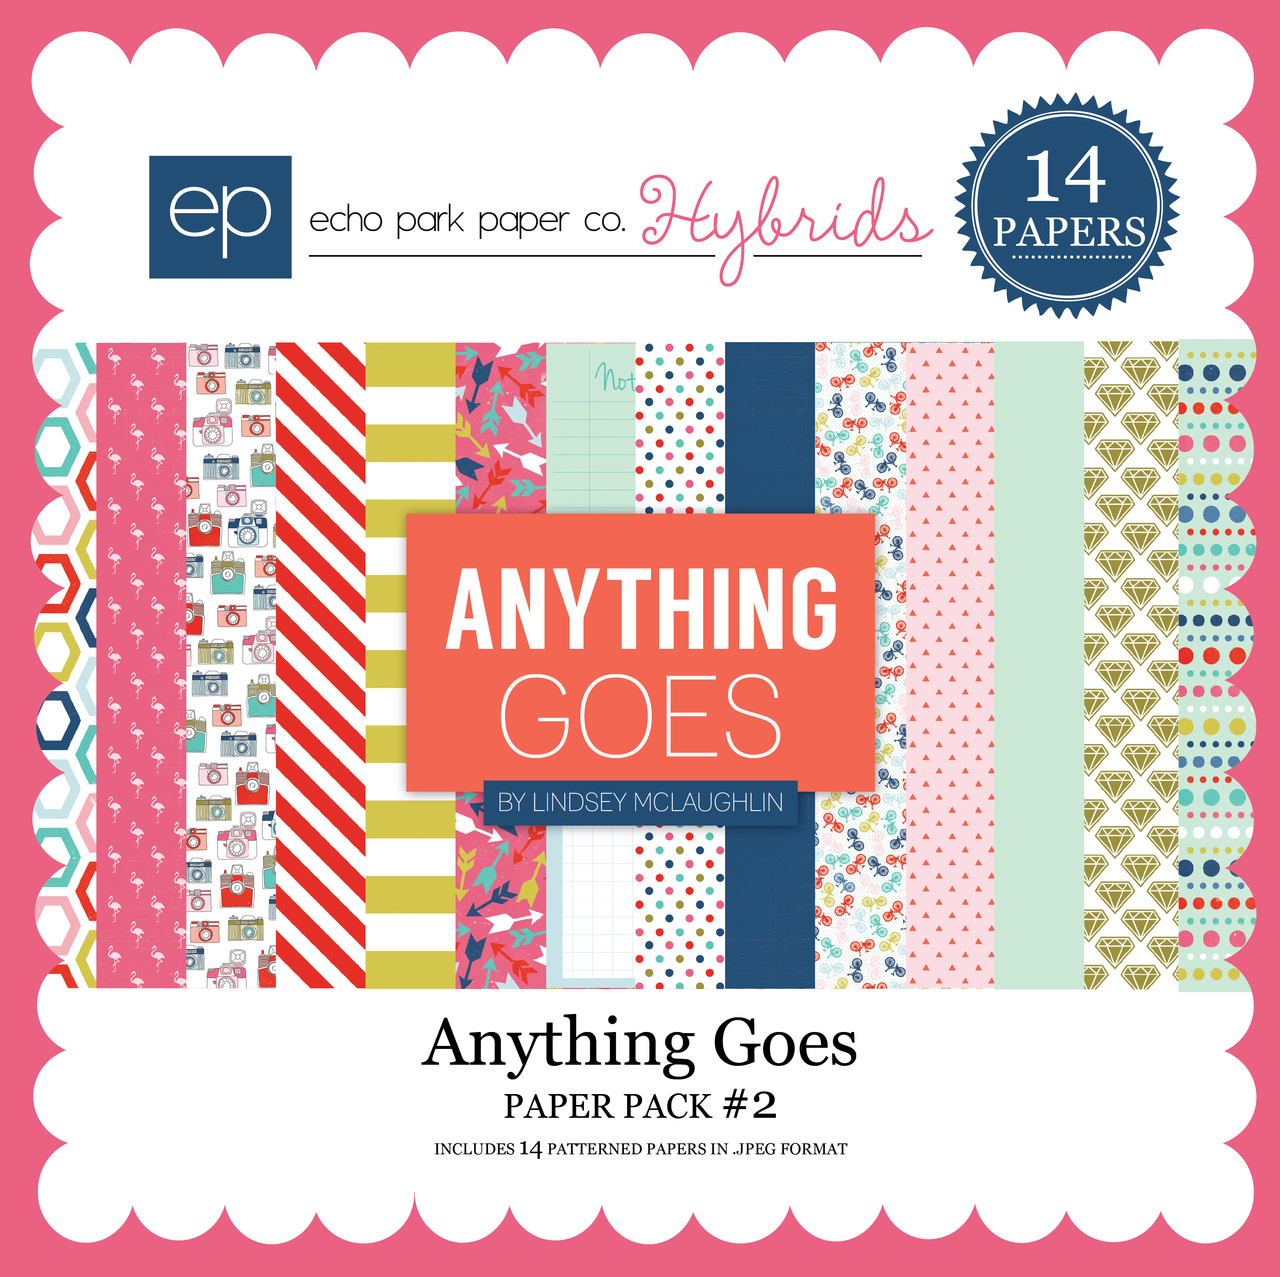 Anything Goes Paper Pack #2